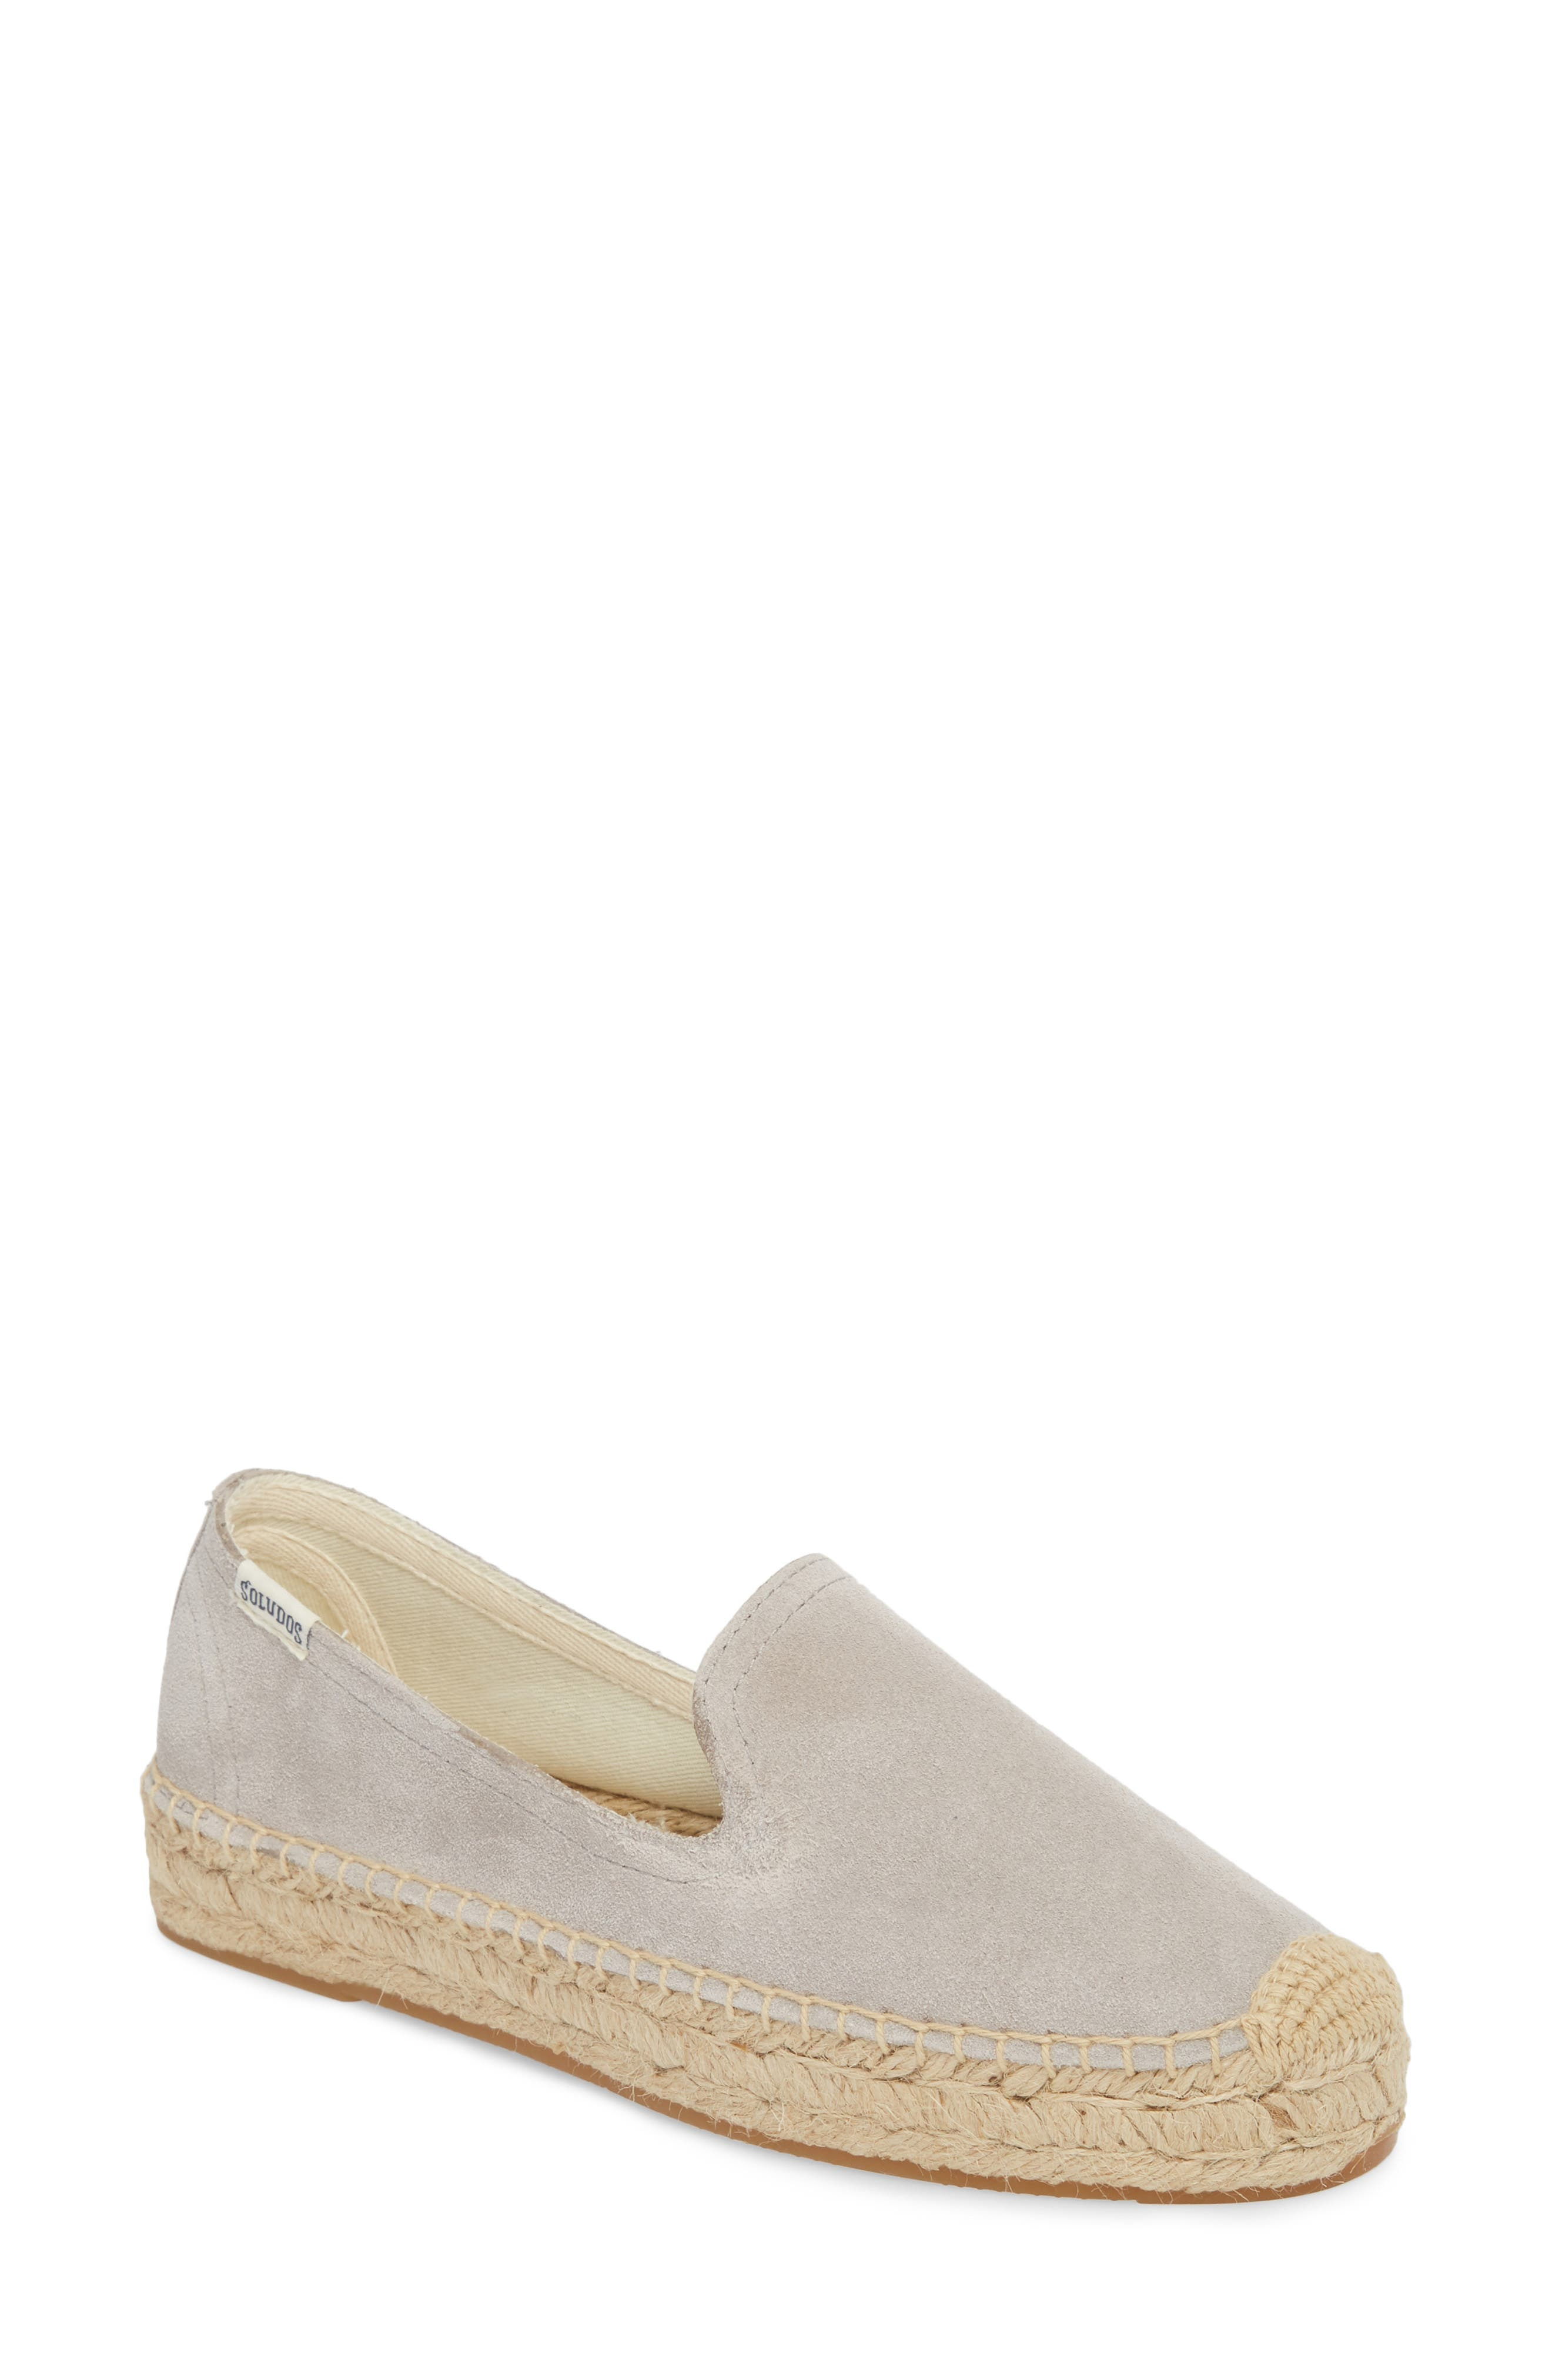 Espadrille Loafer,                             Main thumbnail 1, color,                             STONE